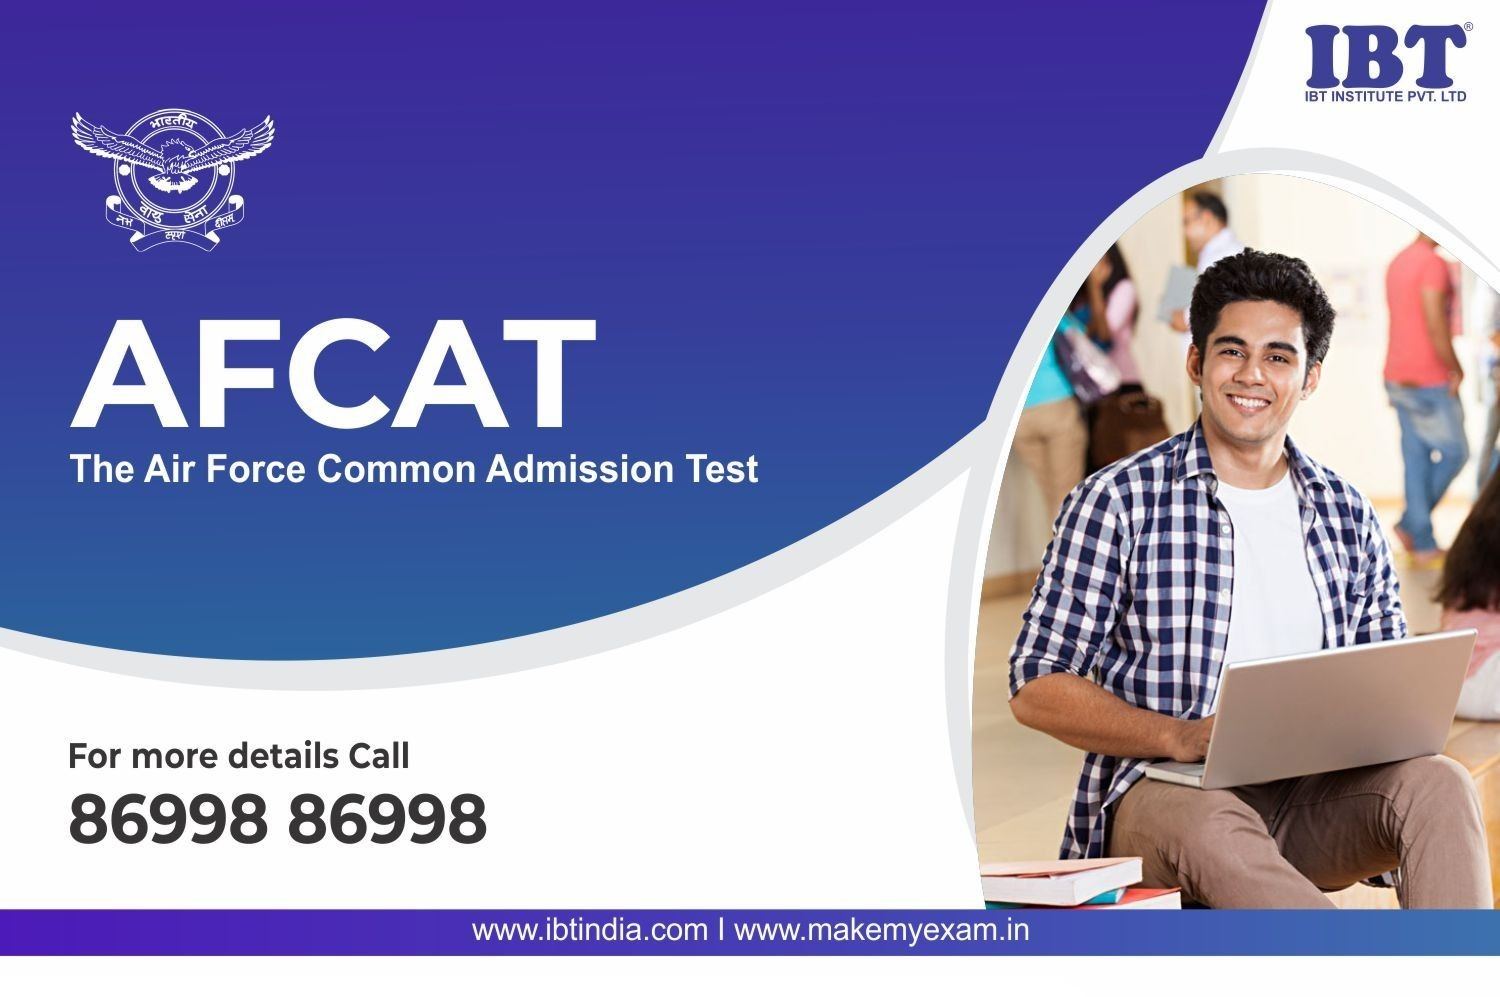 Join IBT for AFCAT Coaching in Chandigarh